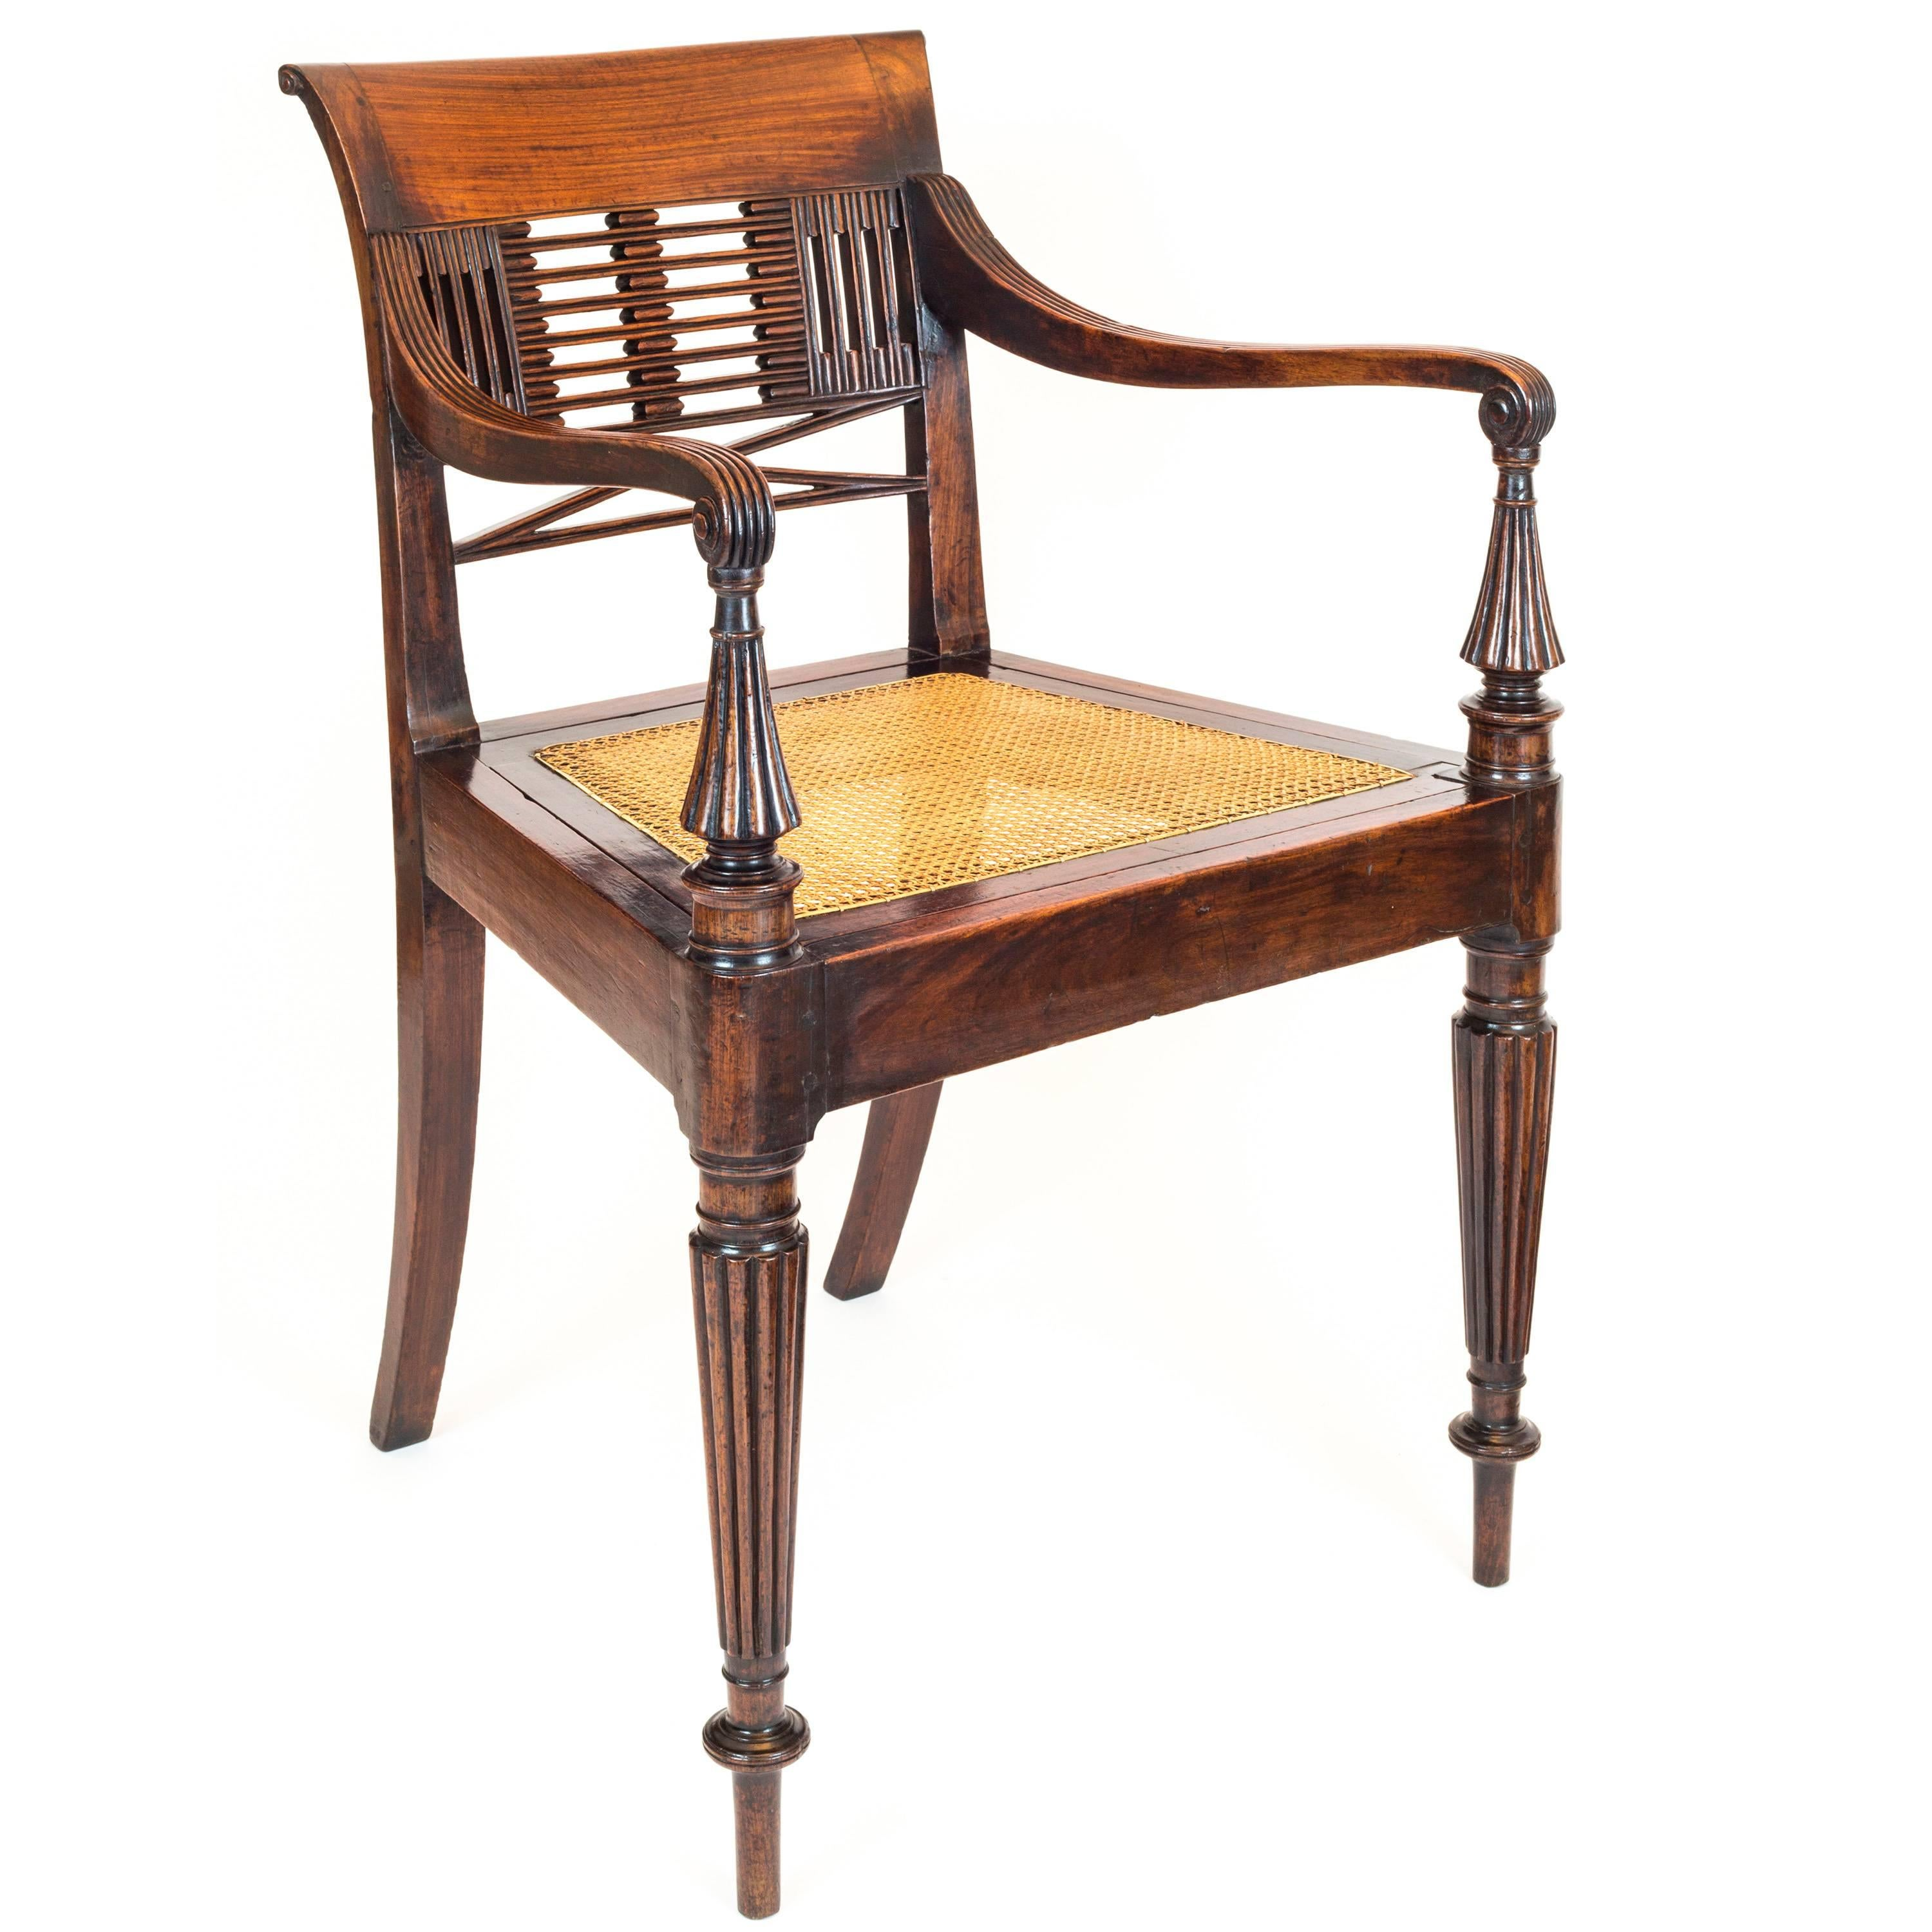 Nice Scrolled Cane Work Open Armchair Antique Furniture